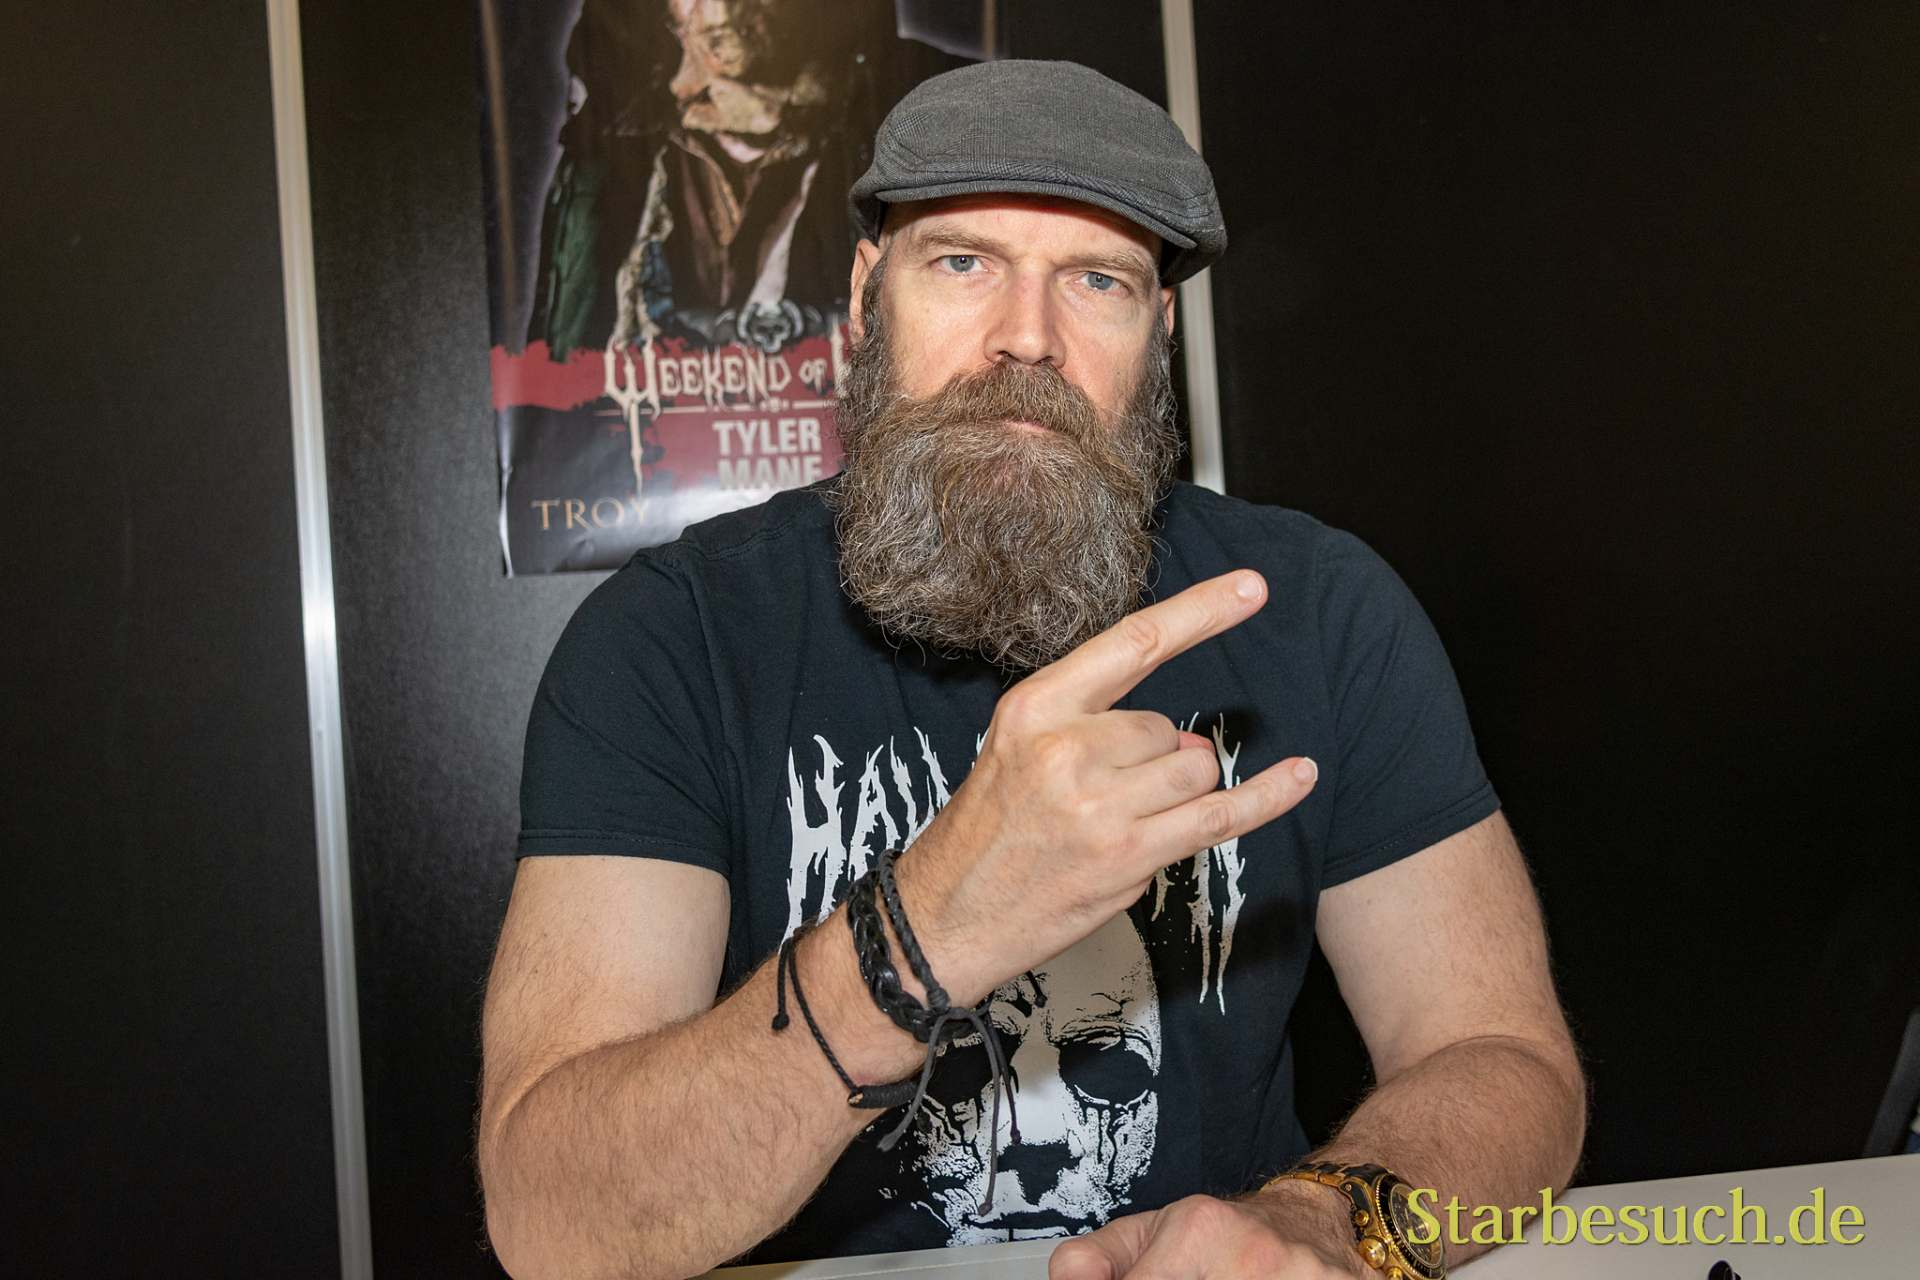 DORTMUND, GERMANY - November 3rd 2018: Tyler Mane at Weekend of Hell 2018